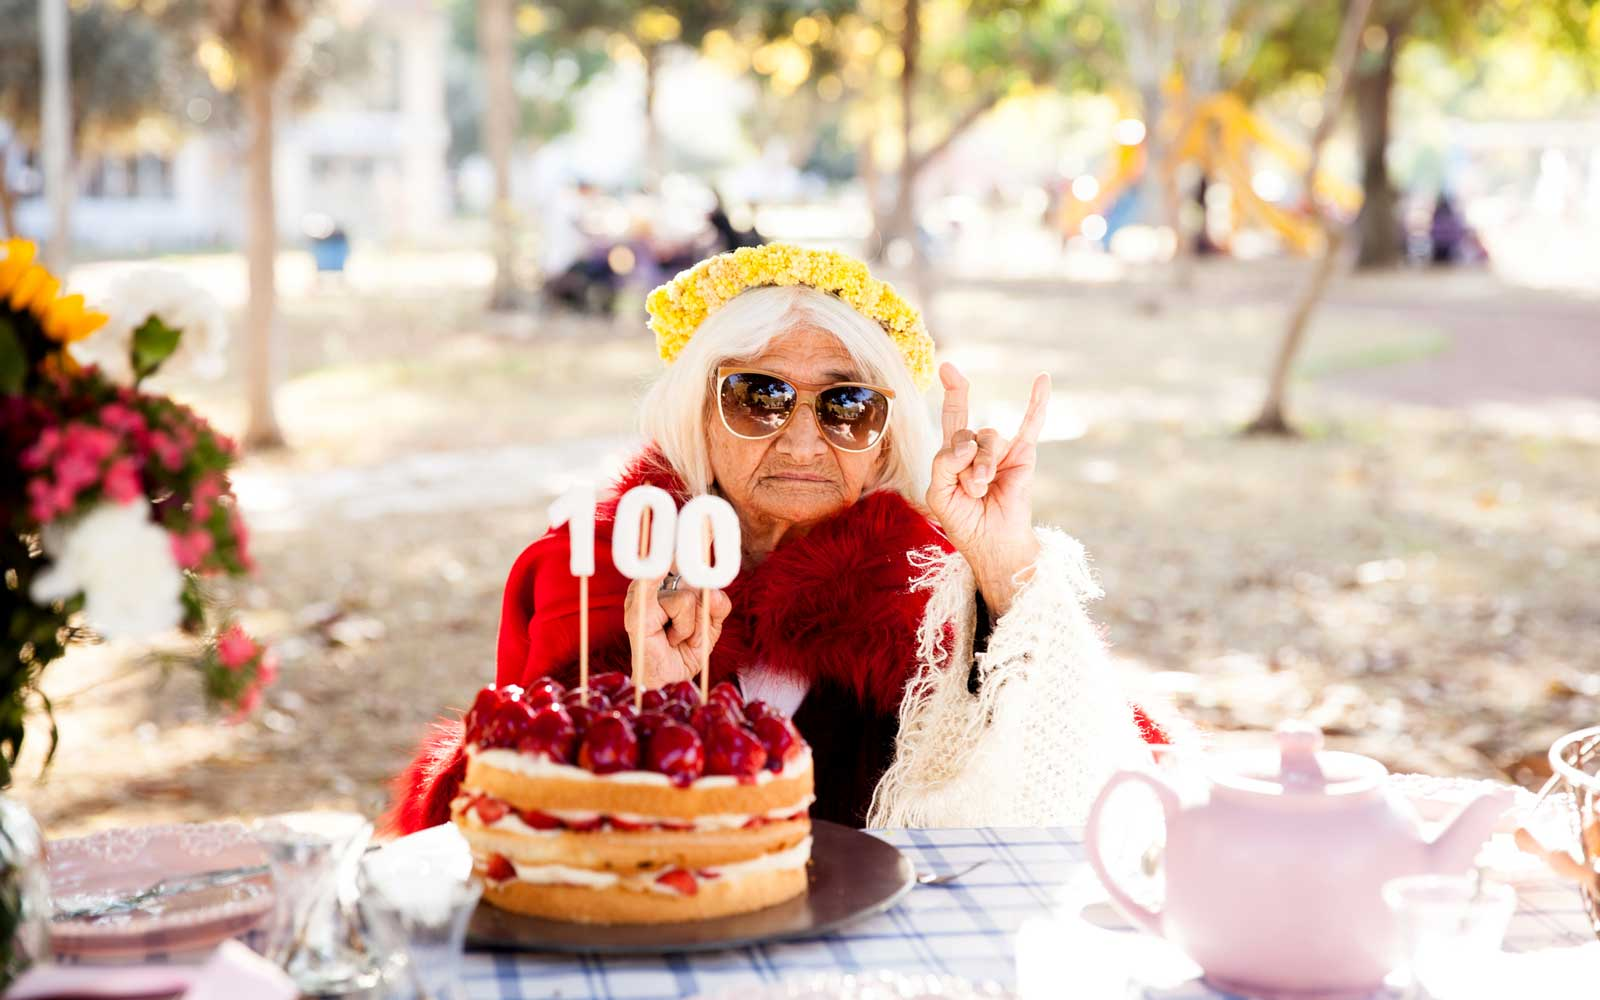 The Best Advice for Living to 100, According to 100 Centenarians